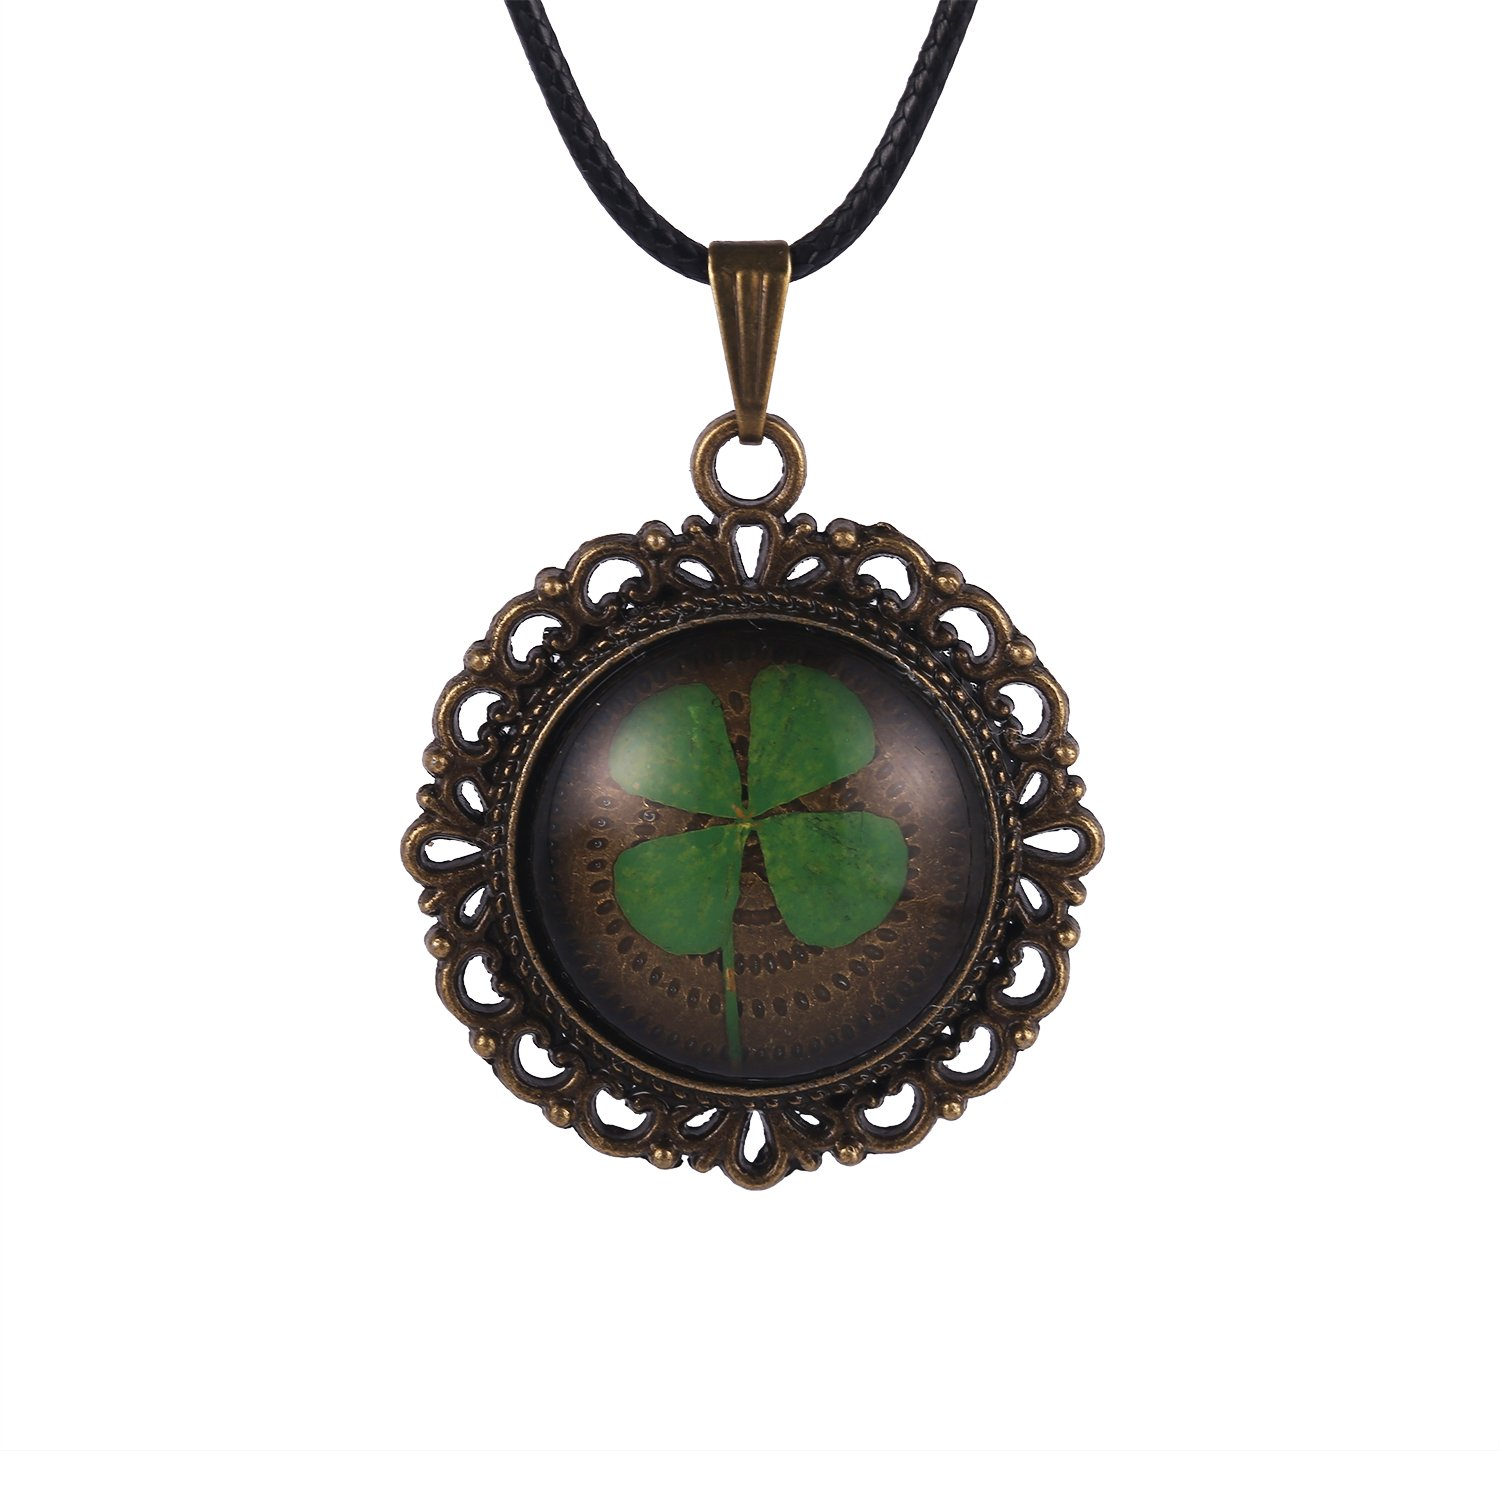 FM FM42 Vintage Style Real Irish Lucky Four Leaf Clover Round Pendant Necklace FN4082